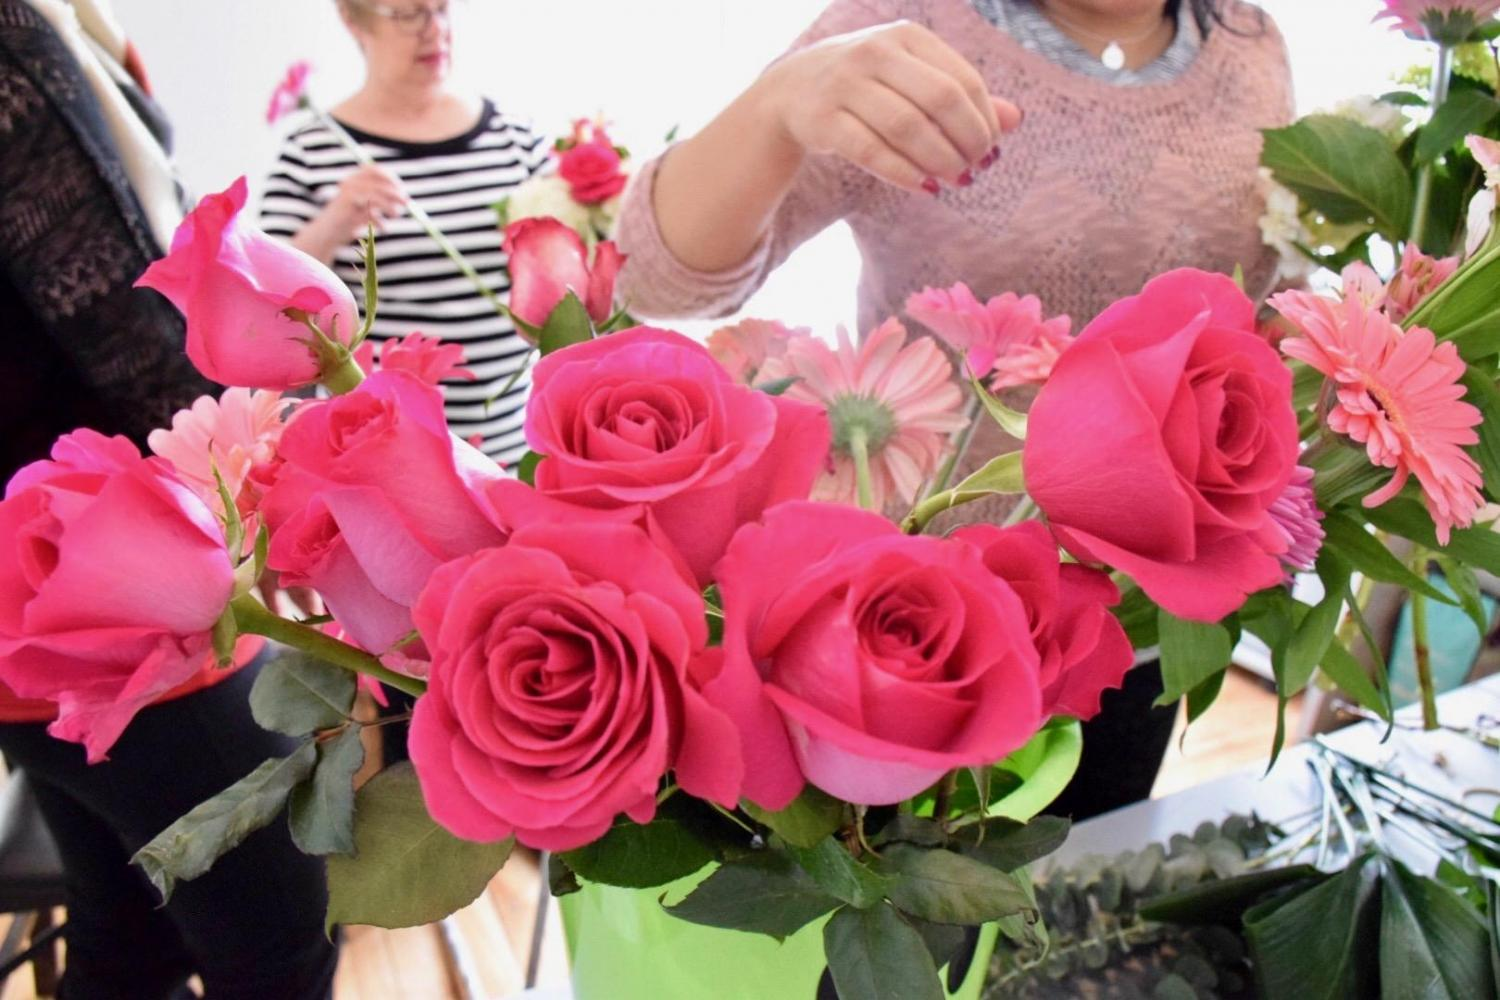 Capital florist wants to make your dreams come true while this is not typical of most flower shops capital florist prides itself in catering to their client izmirmasajfo